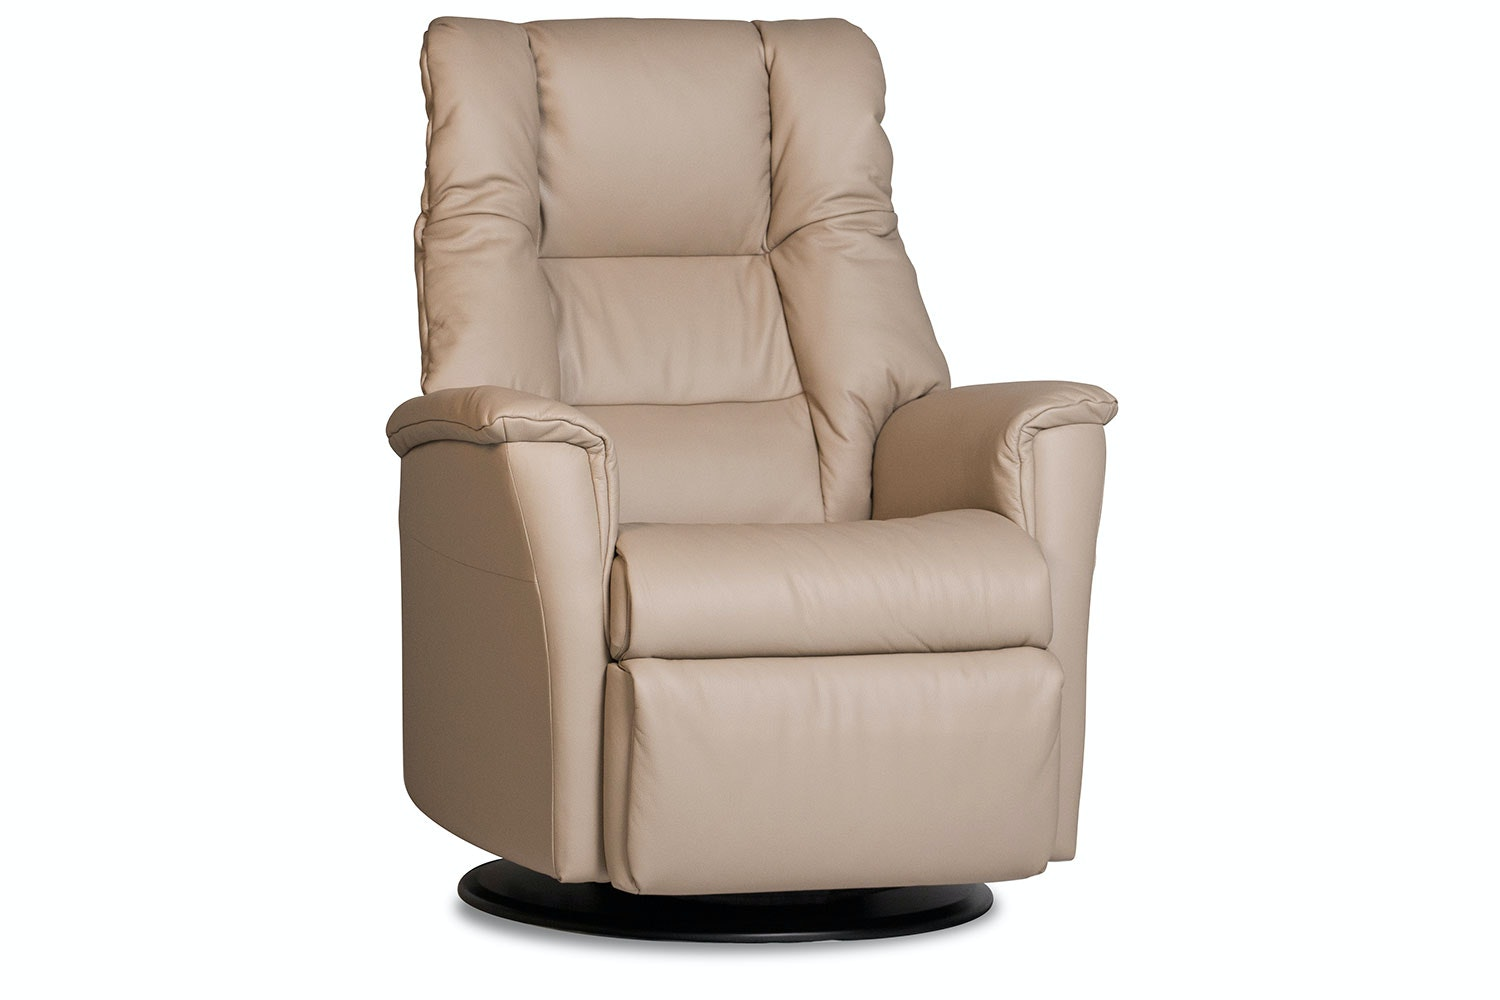 Victor Leather Recliner Chair -Prime - IMG